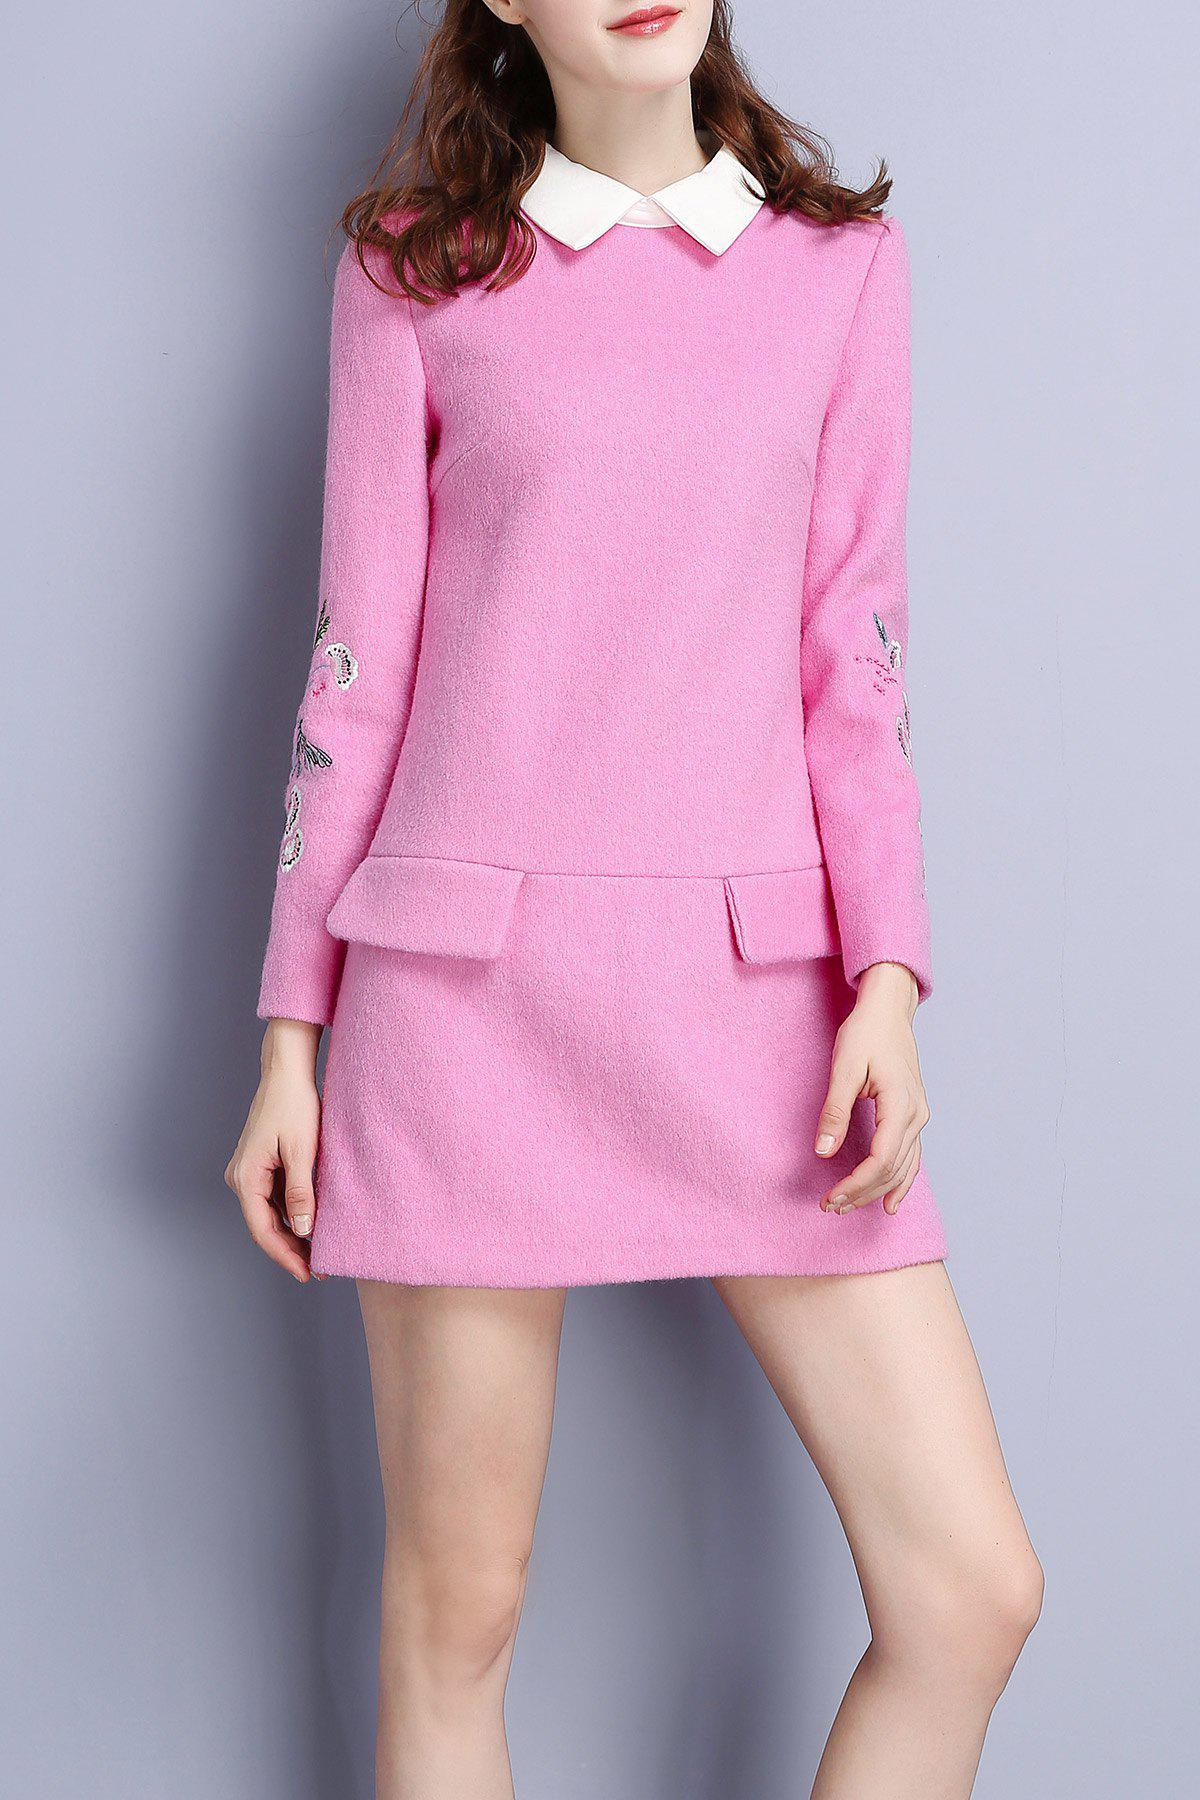 Mini Polo Collar Embroidered Dress - PINK S